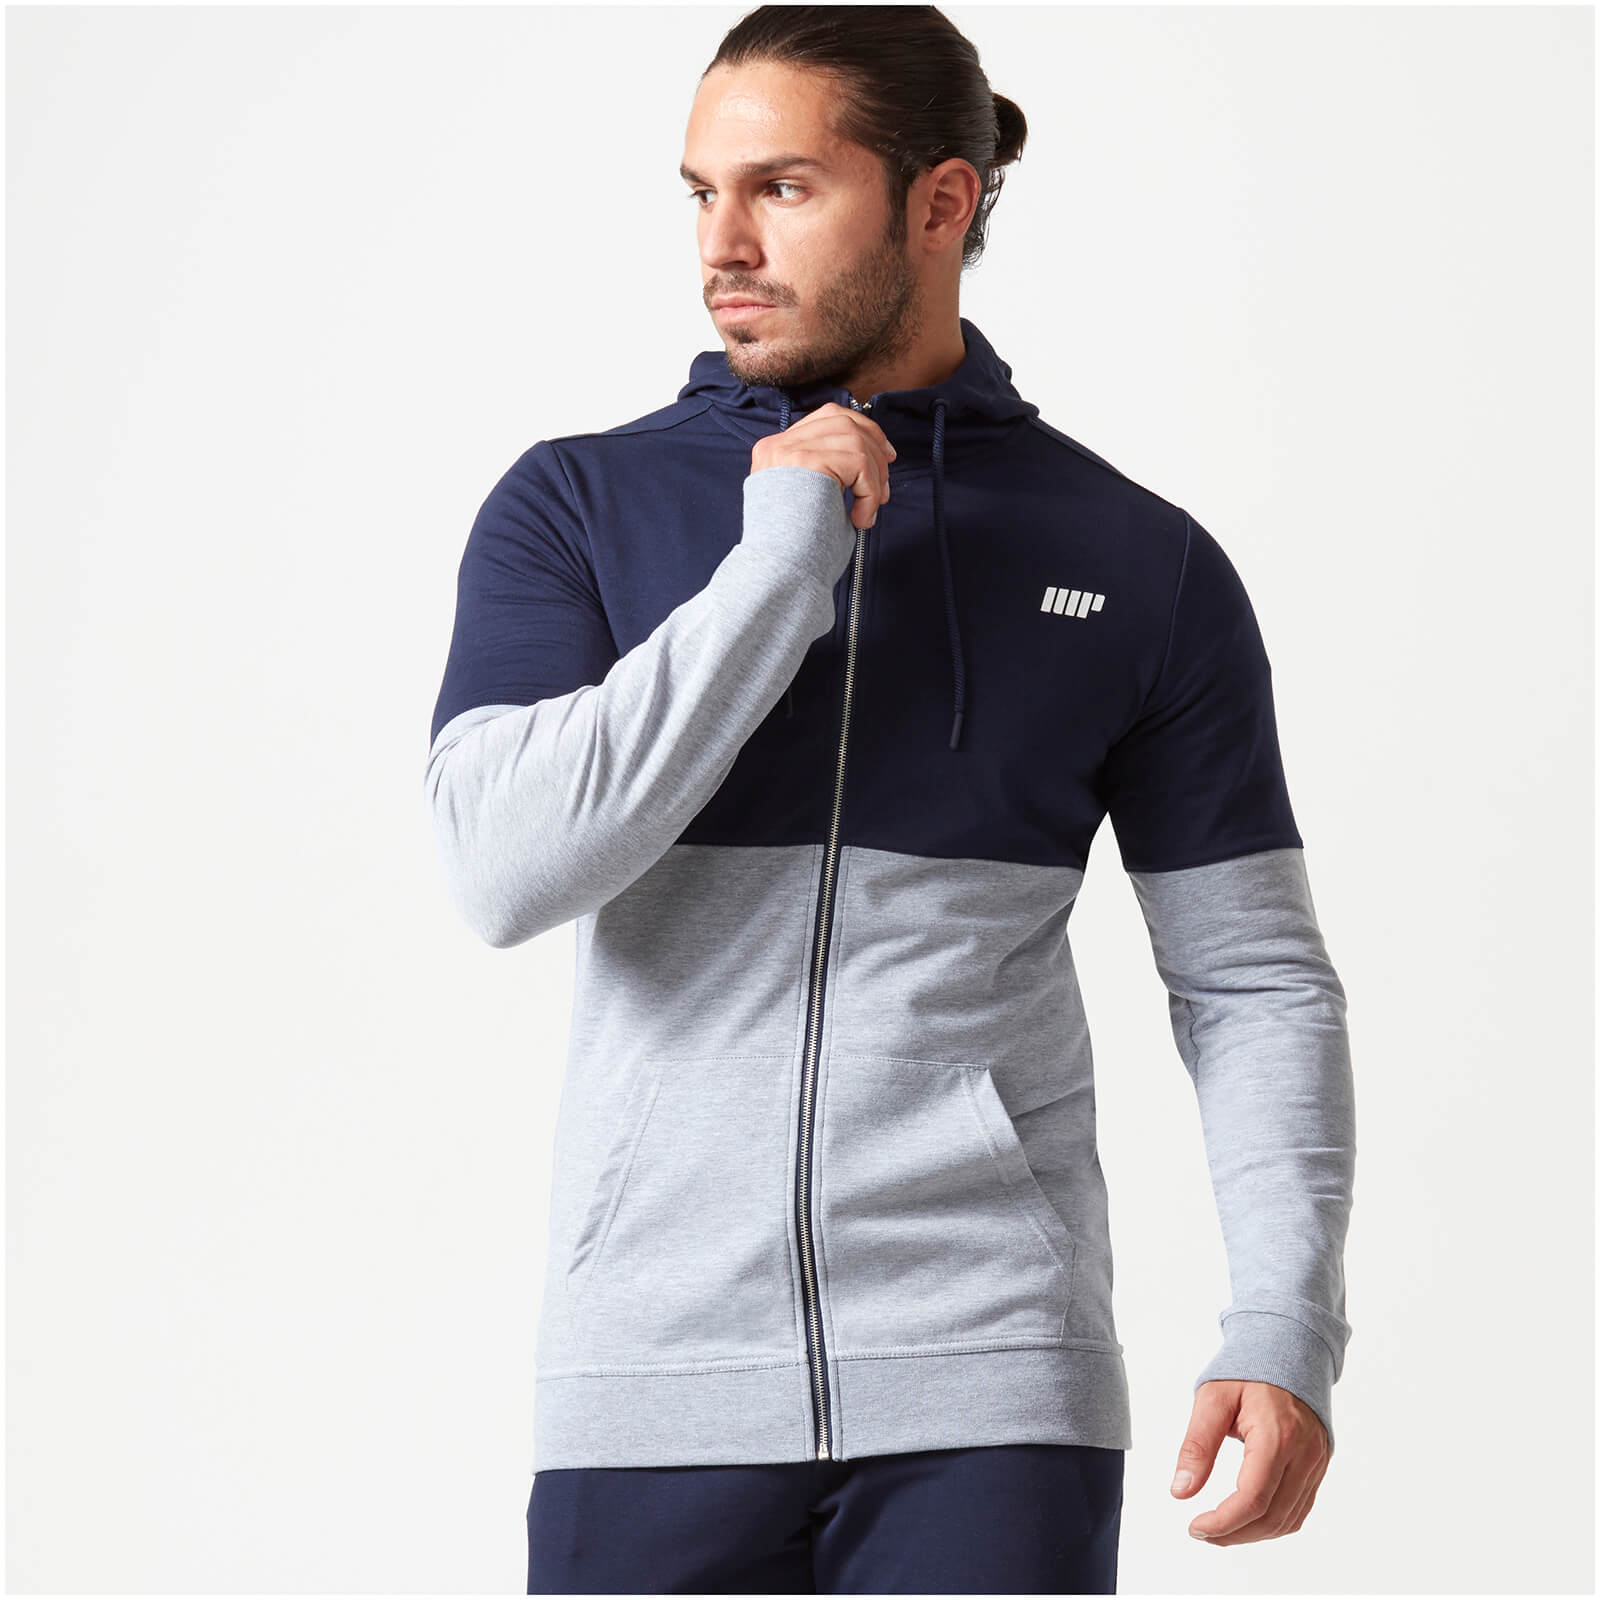 Superlite Zip-Up Hoodie - Navy - XXL